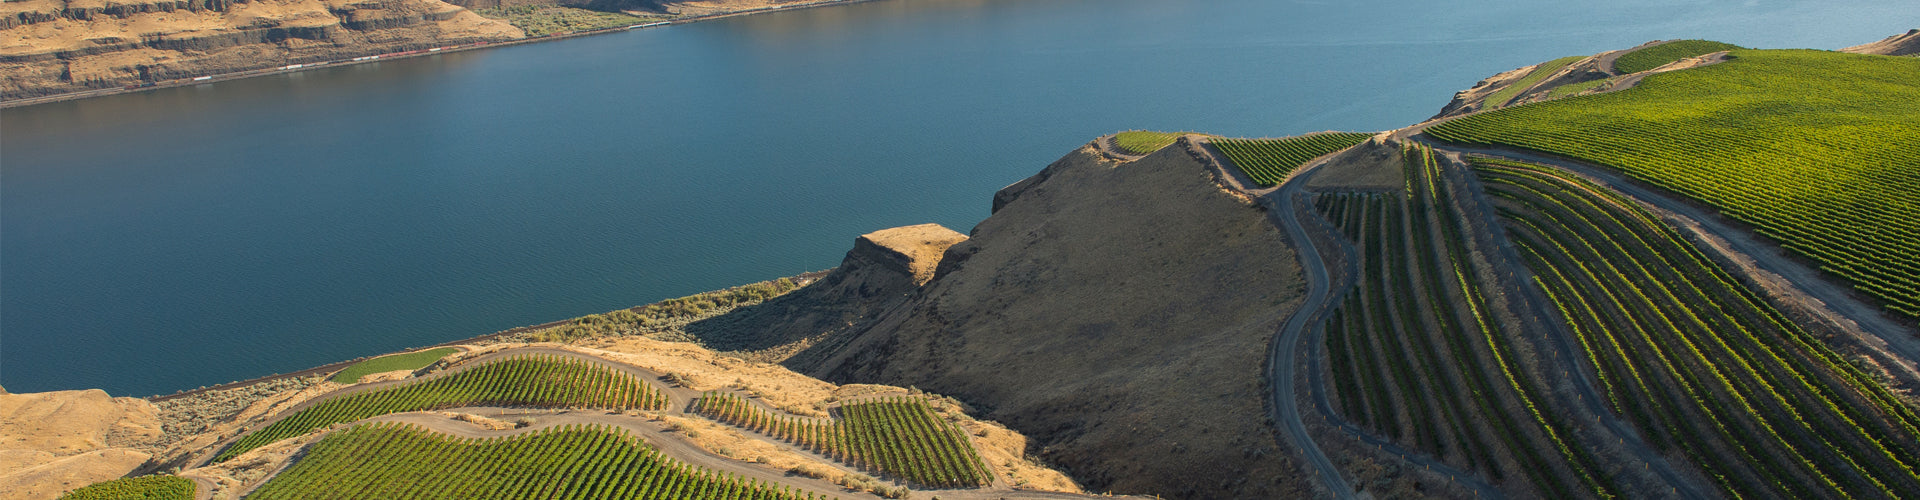 Arial shot of Horse Heaven Hills Benches Vineyard Washington State